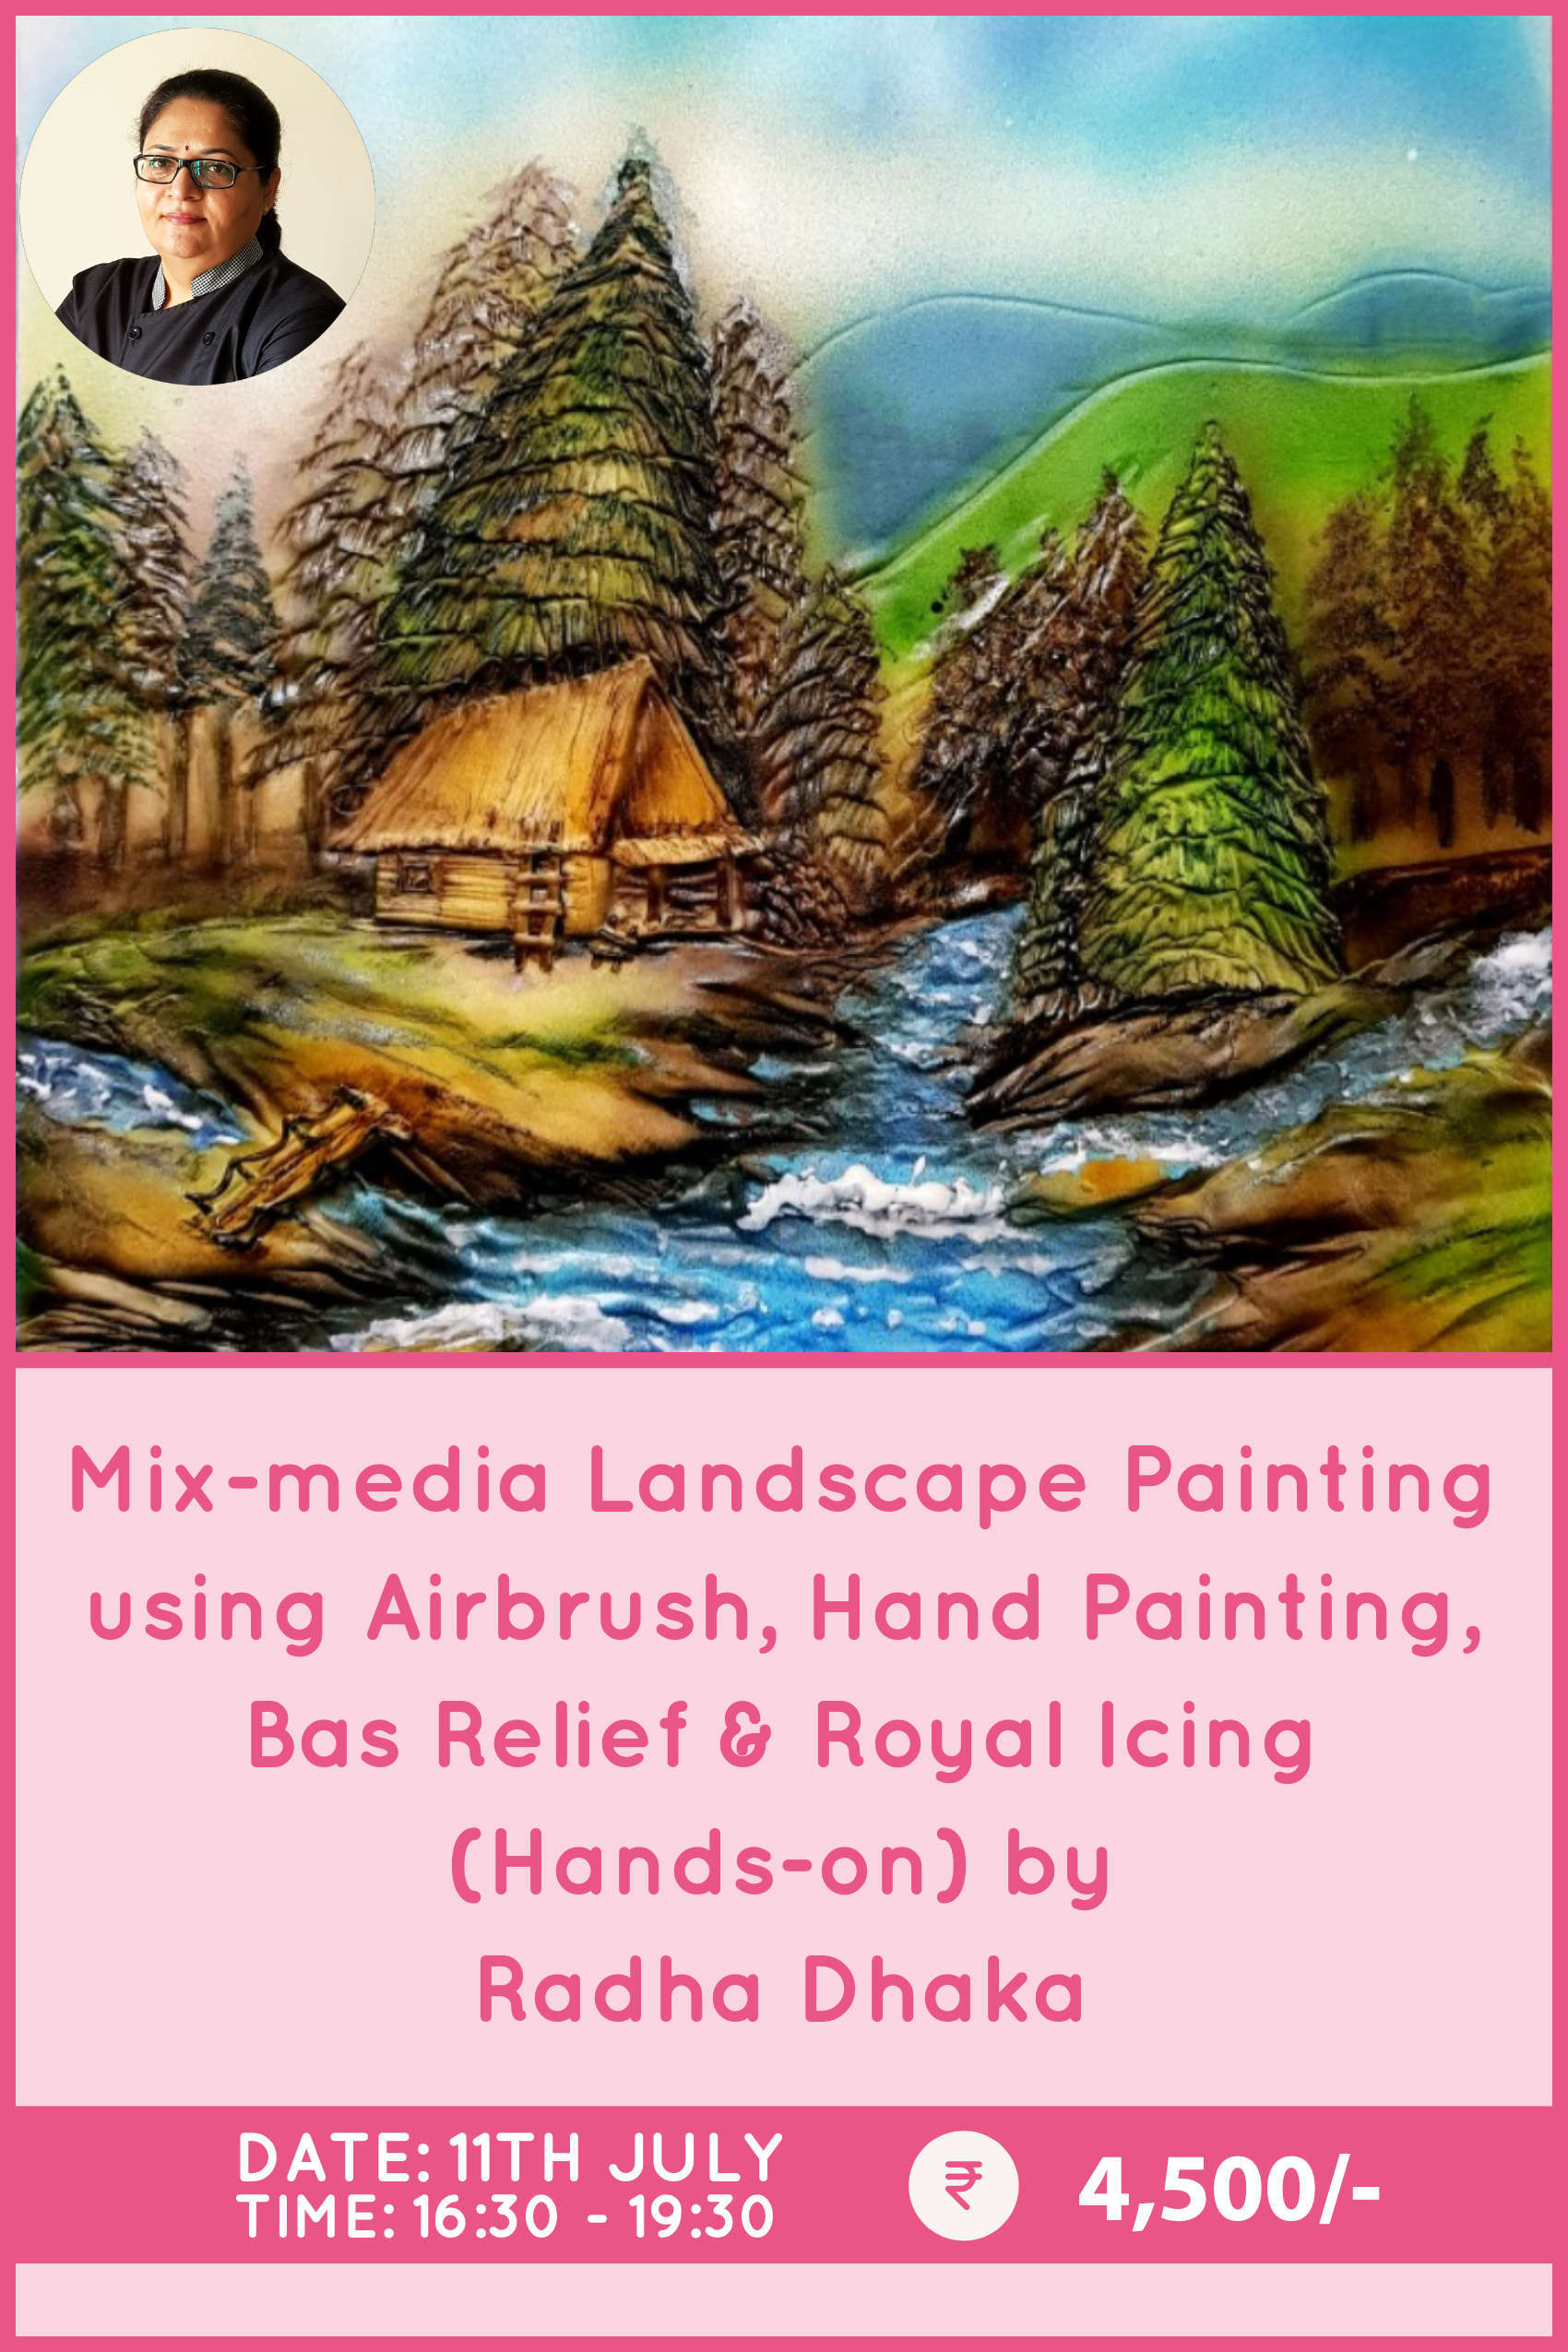 Mix media Landscape Painting using Airbrush, Hand painting, Bas Relief & Royal Icing by Radha Dhaka